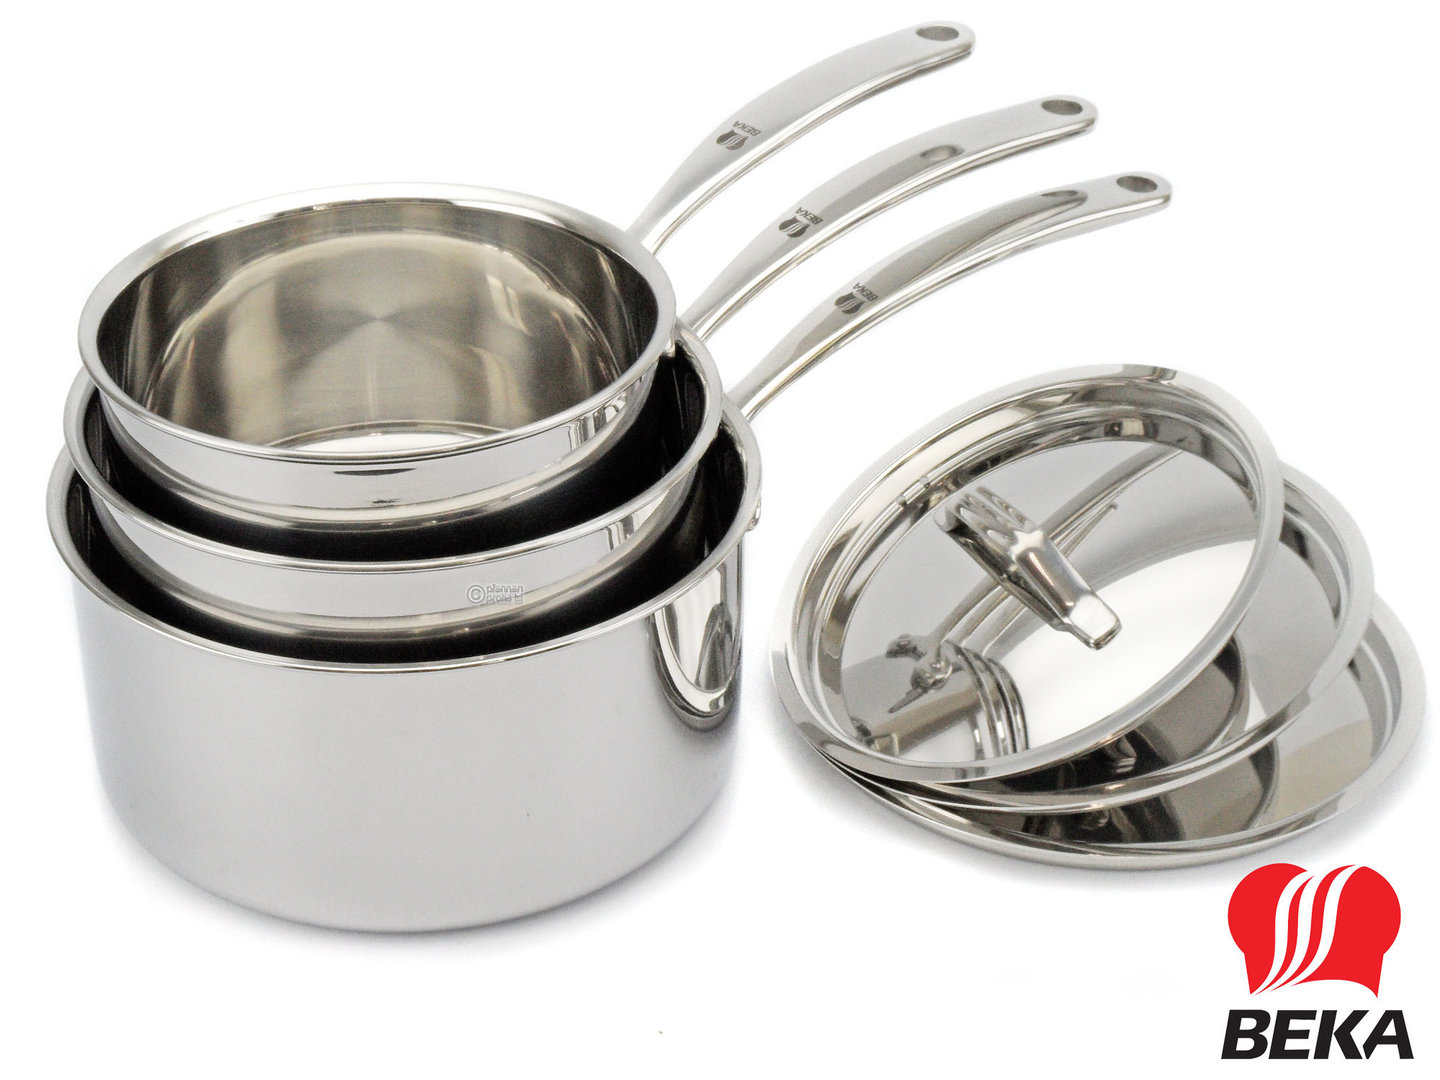 BEKA 3-ply saucepan set TRI-LUX 16 18 20 cm with lids